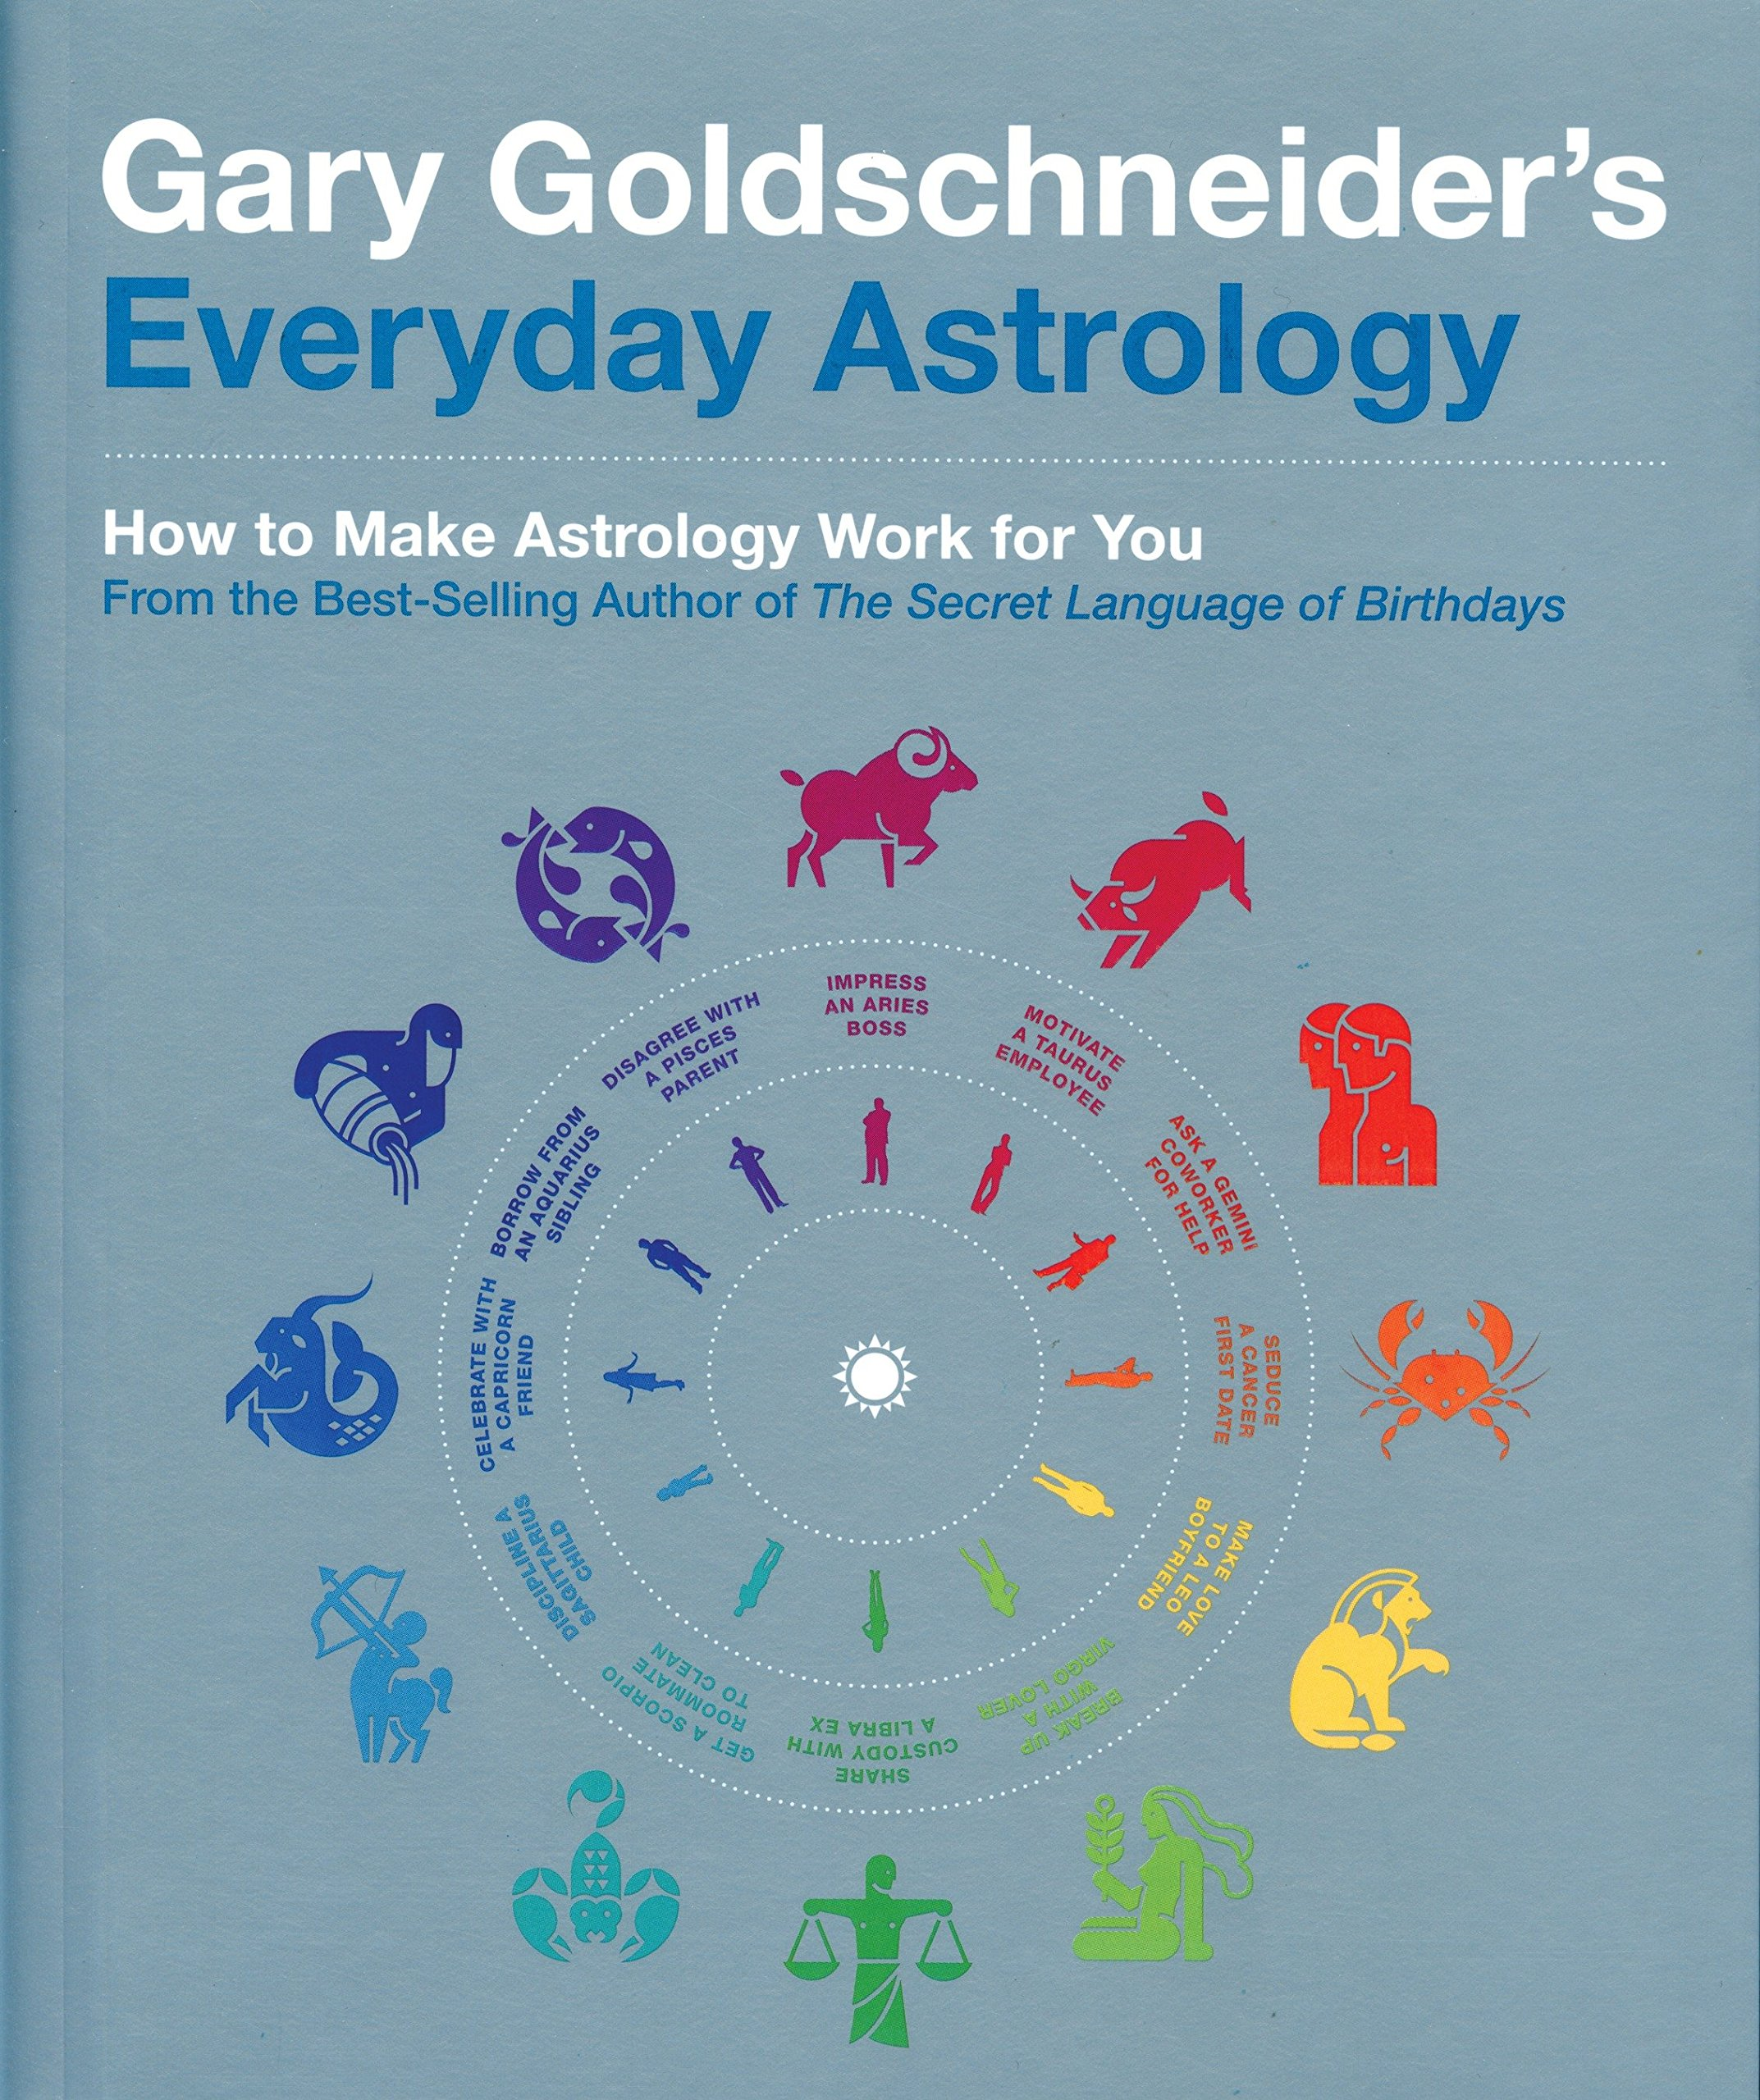 Gary Goldschneider's Everyday Astrology: How to Make Astrology Work